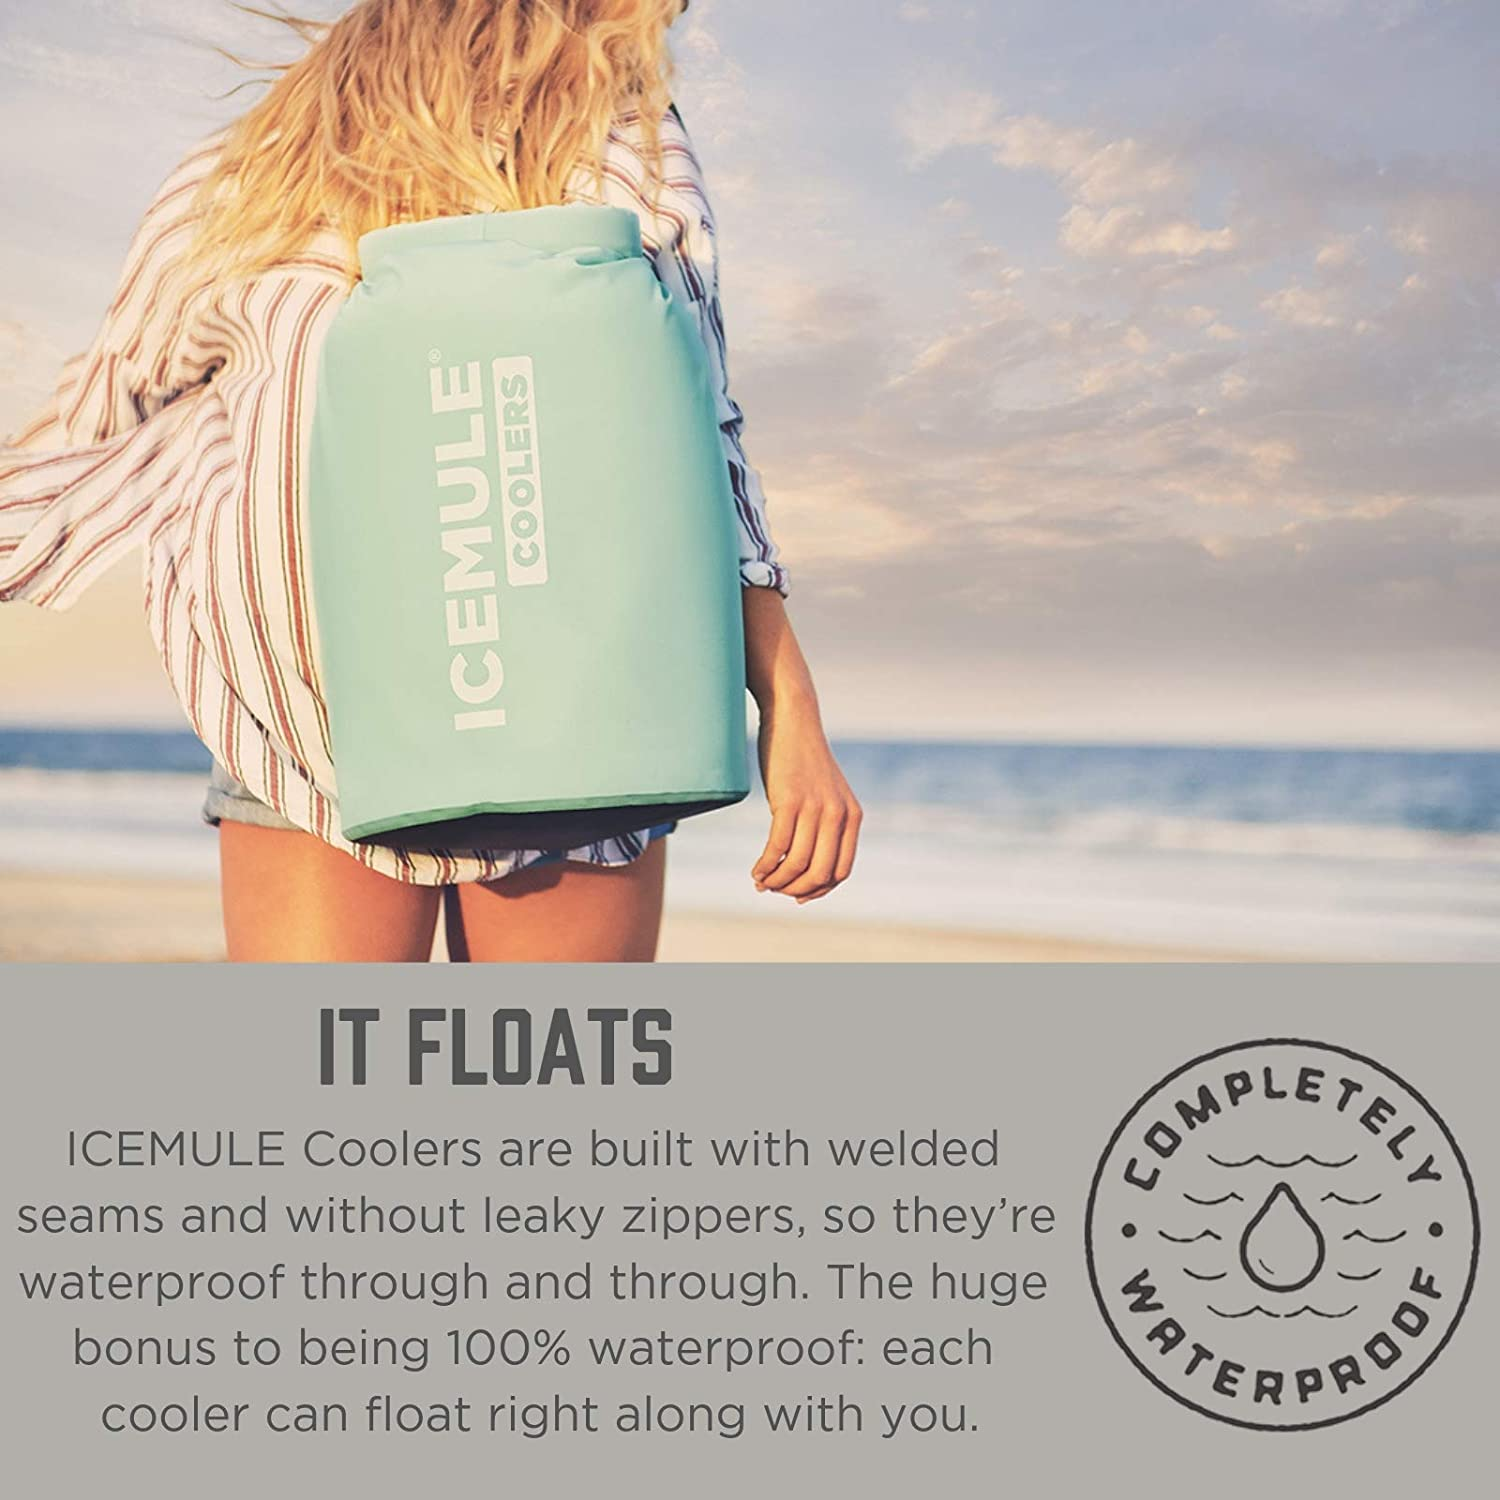 Picnics The Beach Fishing IceMule Classic Insulated Backpack Cooler Bag Waterproof /& Soft-Sided Cooler Backpack for Hiking Collapsible Camping Hands-Free Highly-Portable